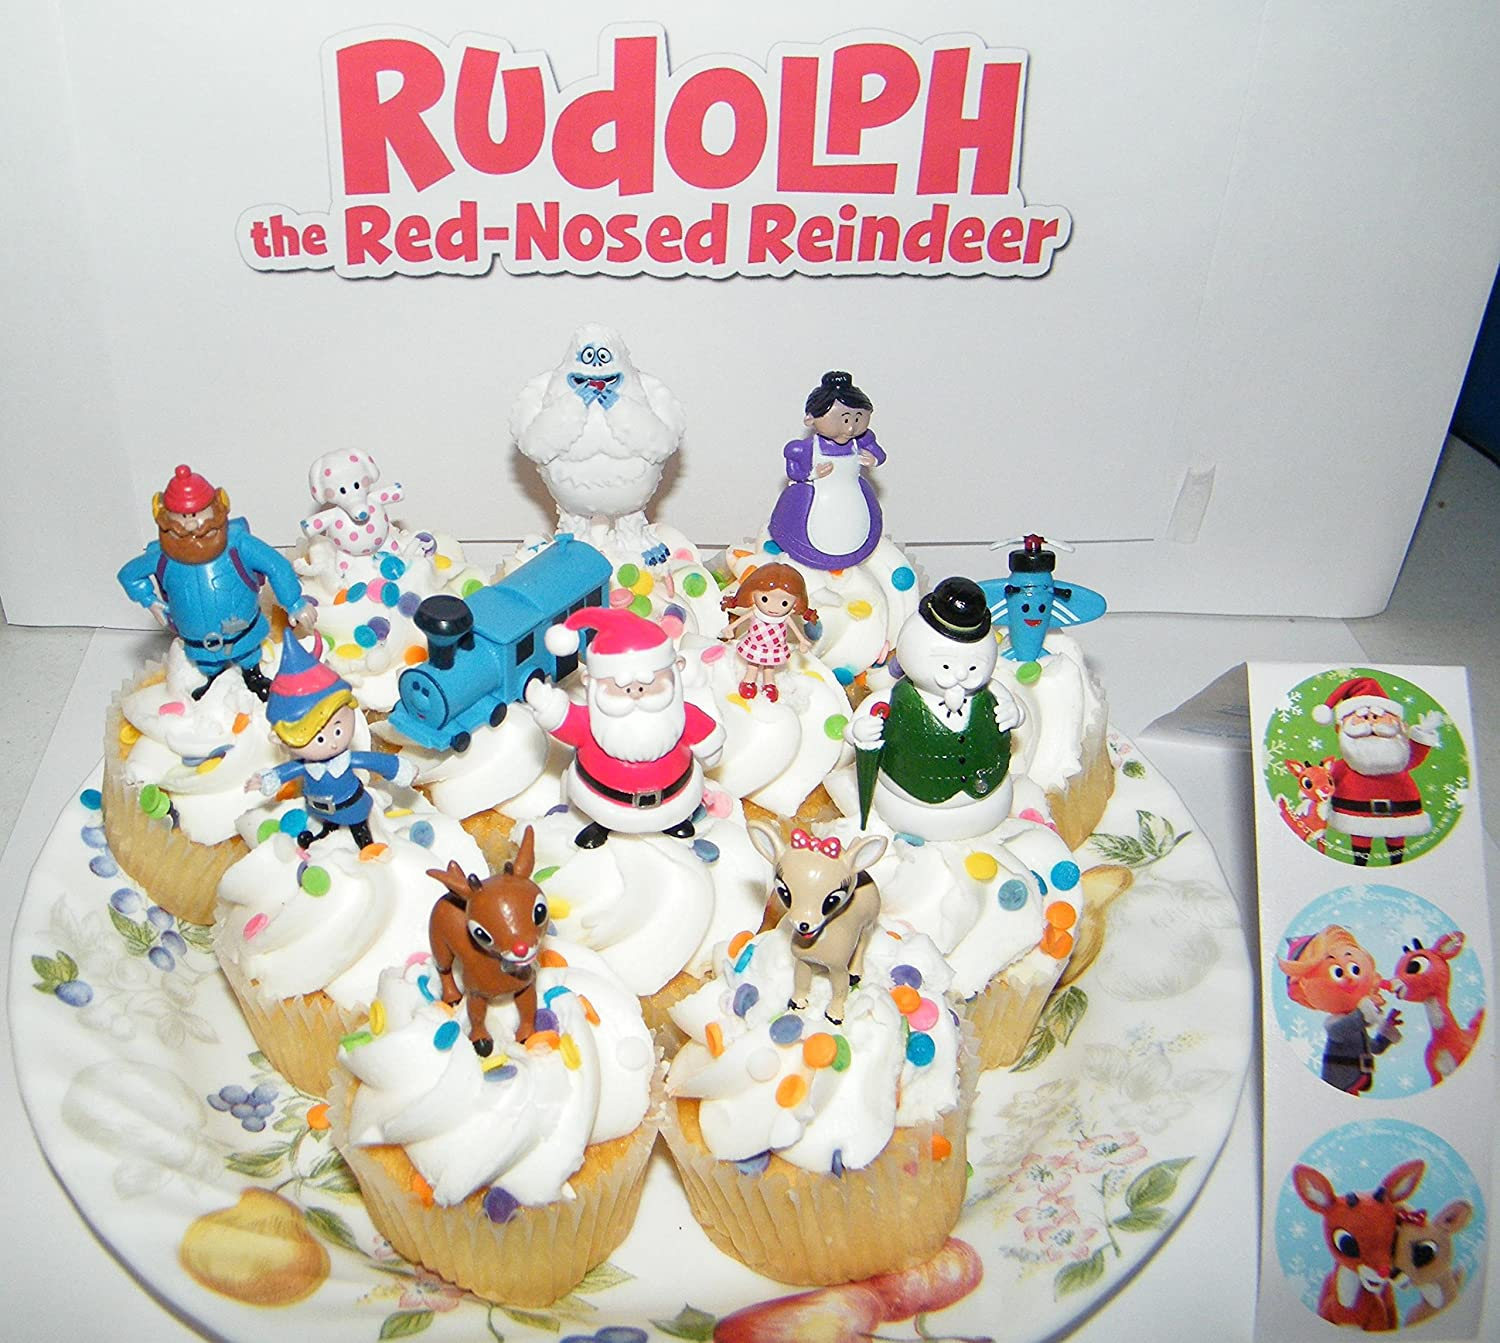 Amazon.com : Rudolph the Red Nosed Reindeer Figure Set of 12 Mini ...